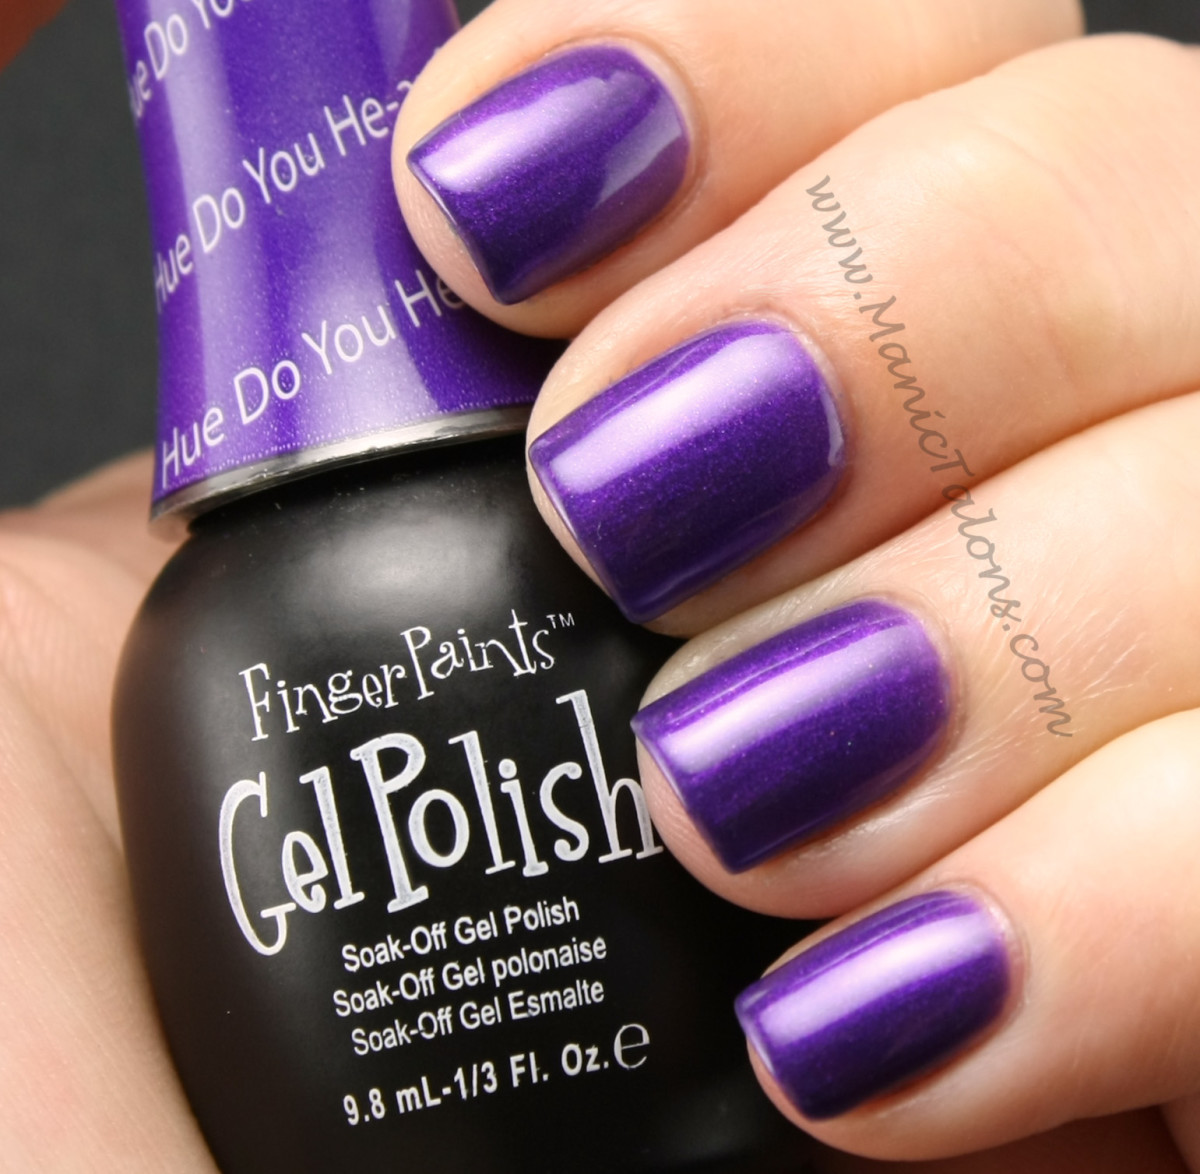 how-to-apply-gel-polish-advice-from-a-licensed-professional